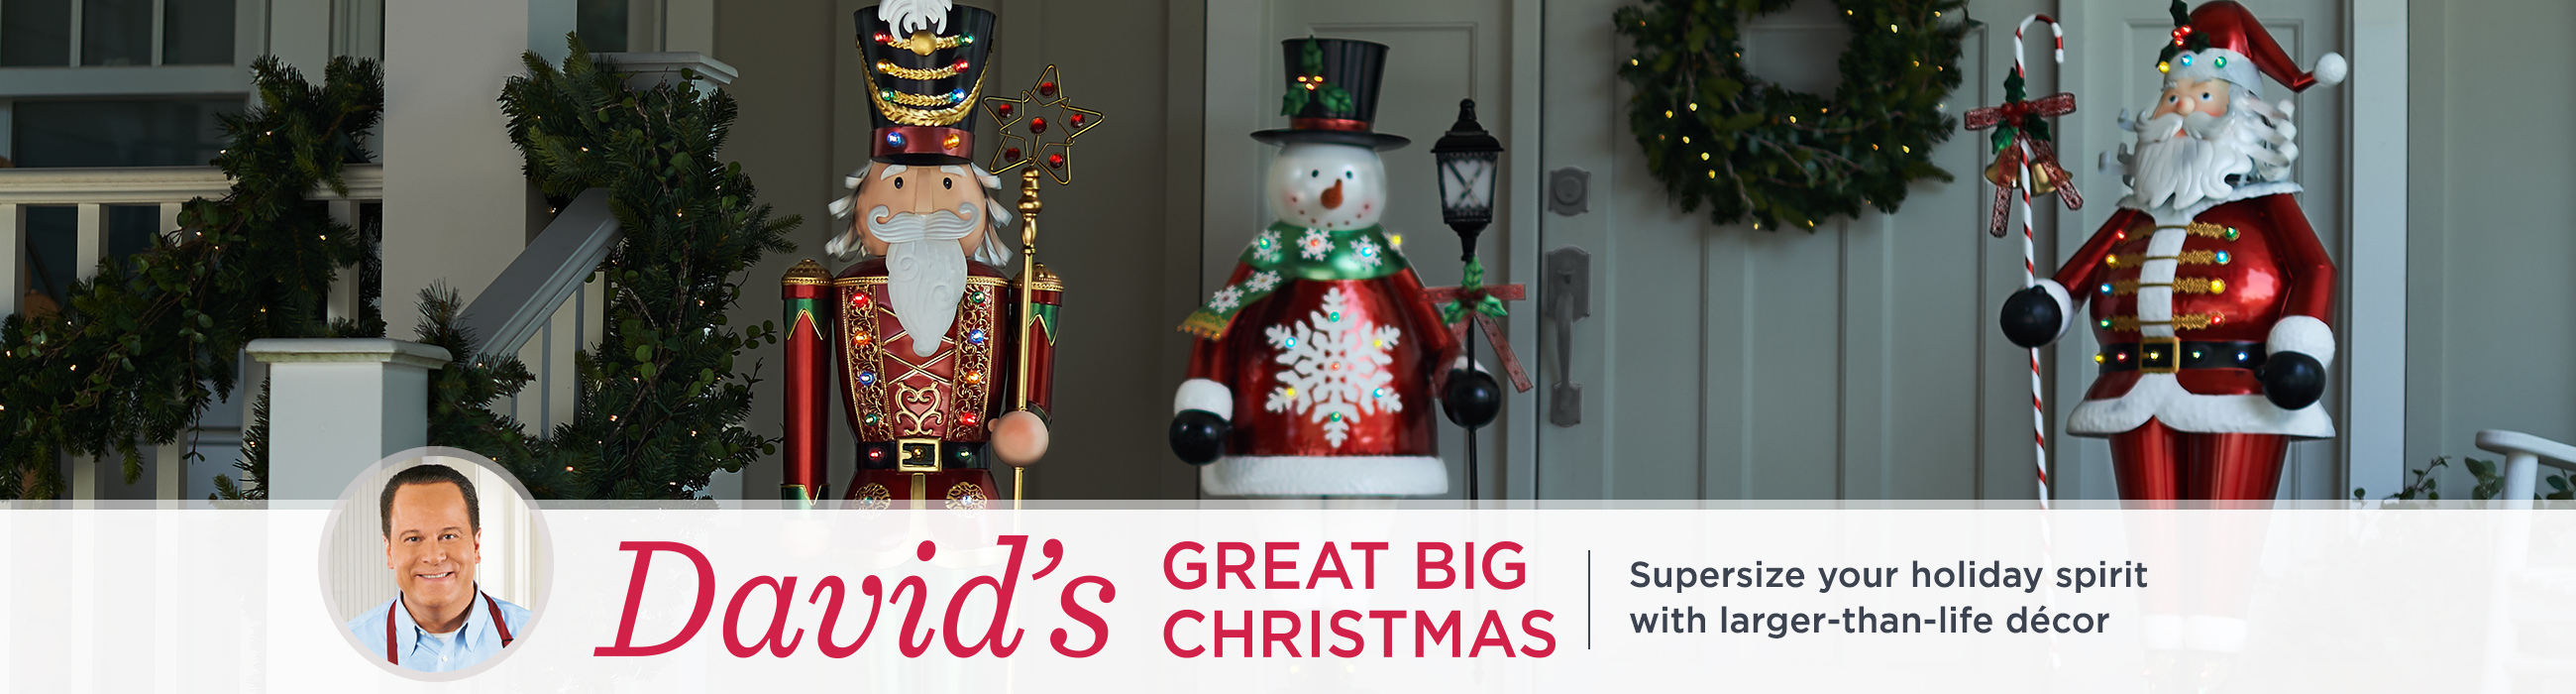 davids great big christmas supersize your holiday spirit with larger than life dcor